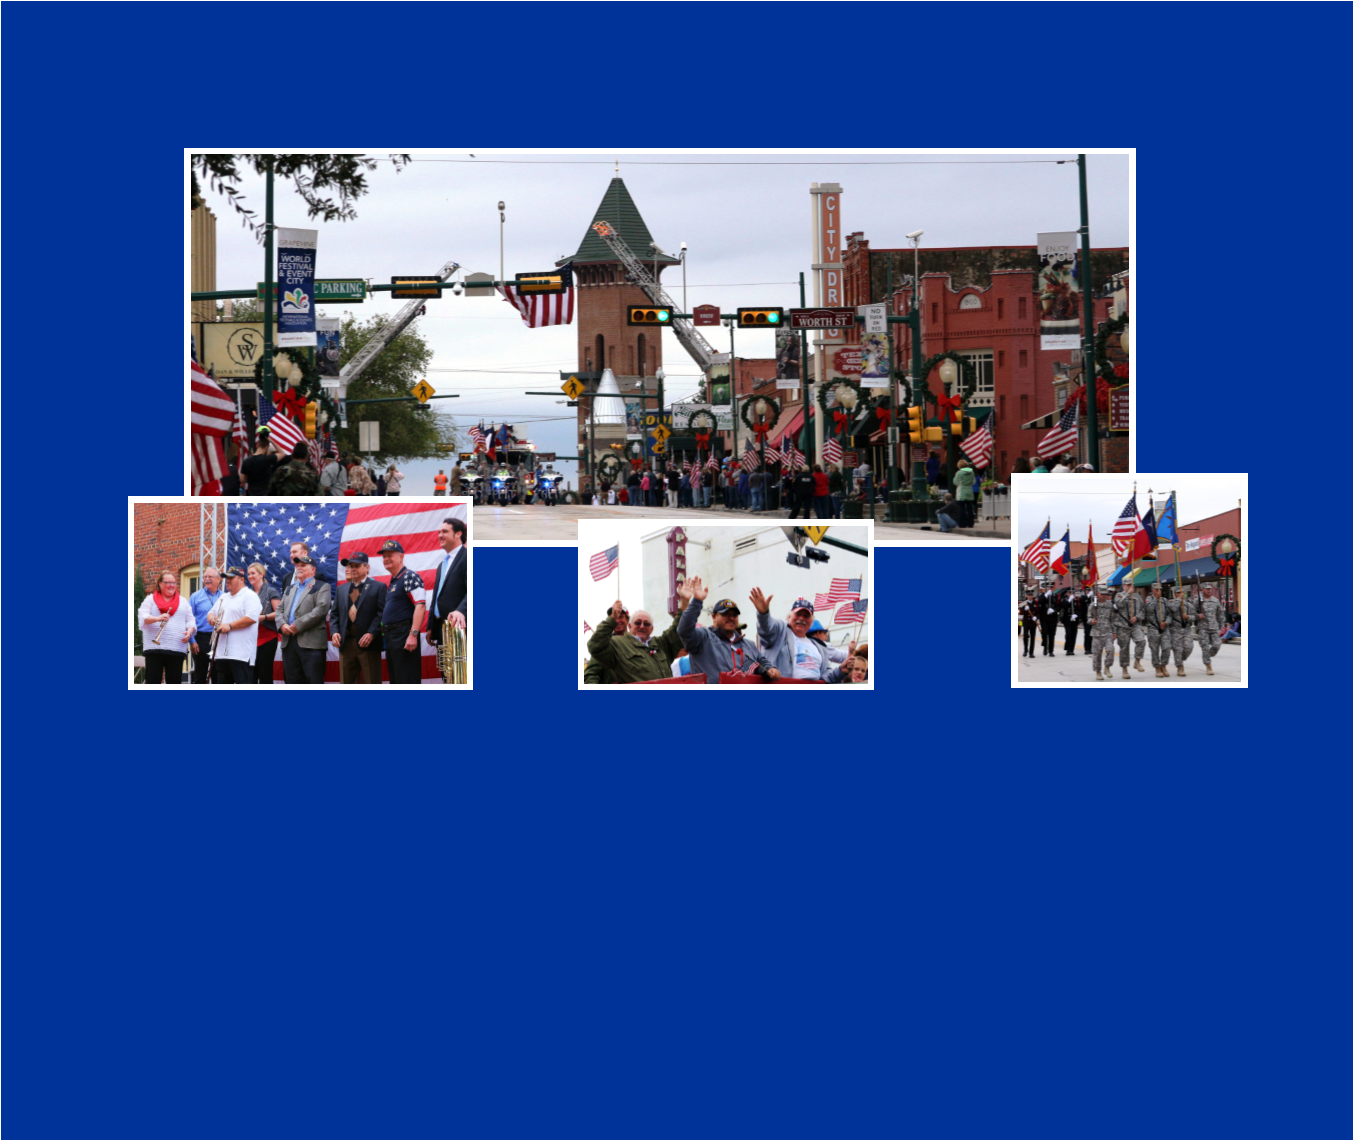 Grapevine Holds Annual Veterans Day Parade & Fair